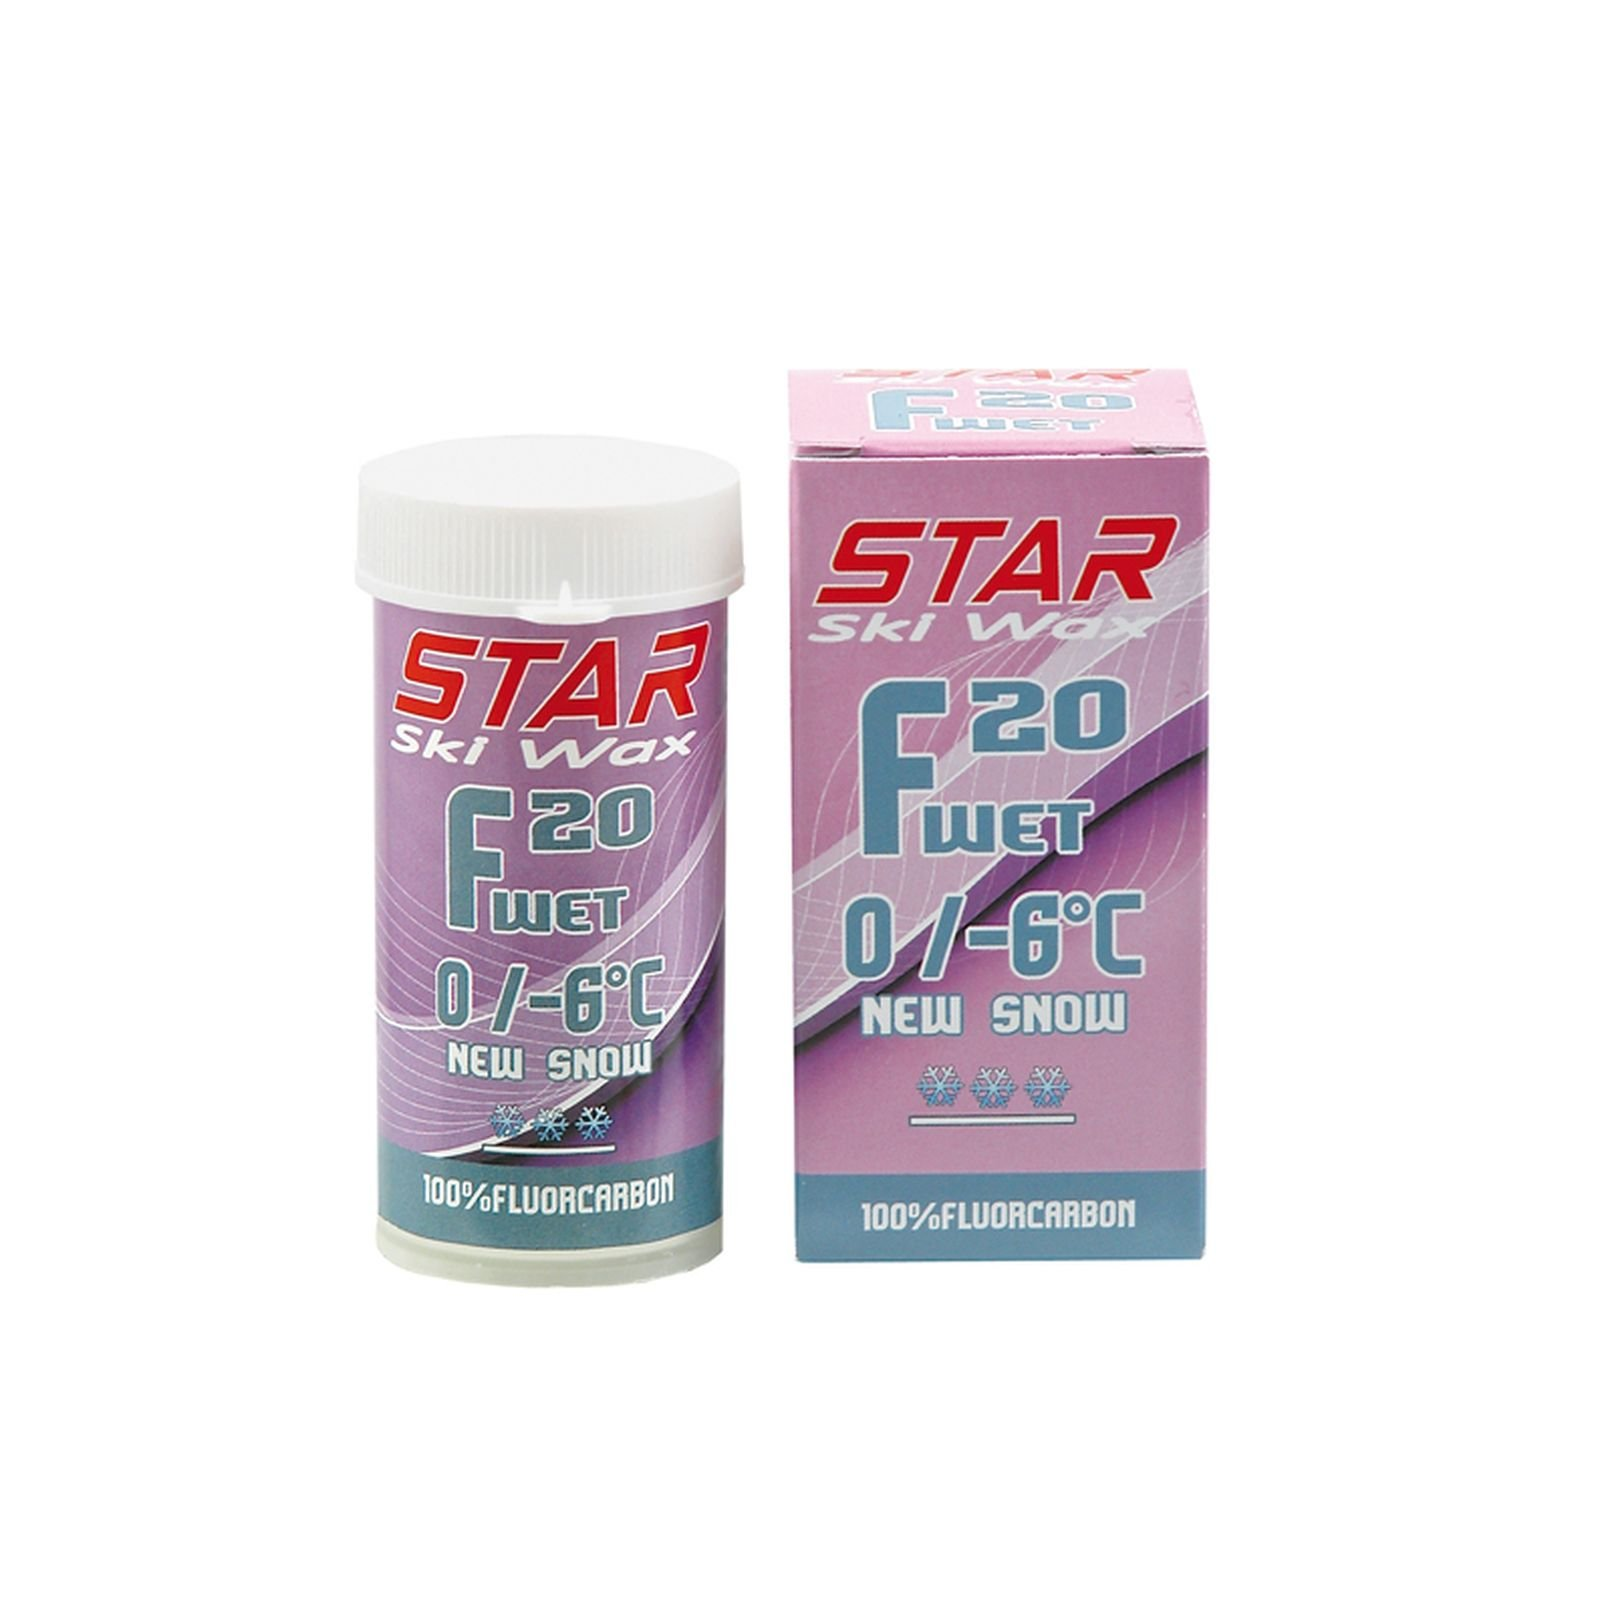 Star F20 Fluorocarbon Powder by Star